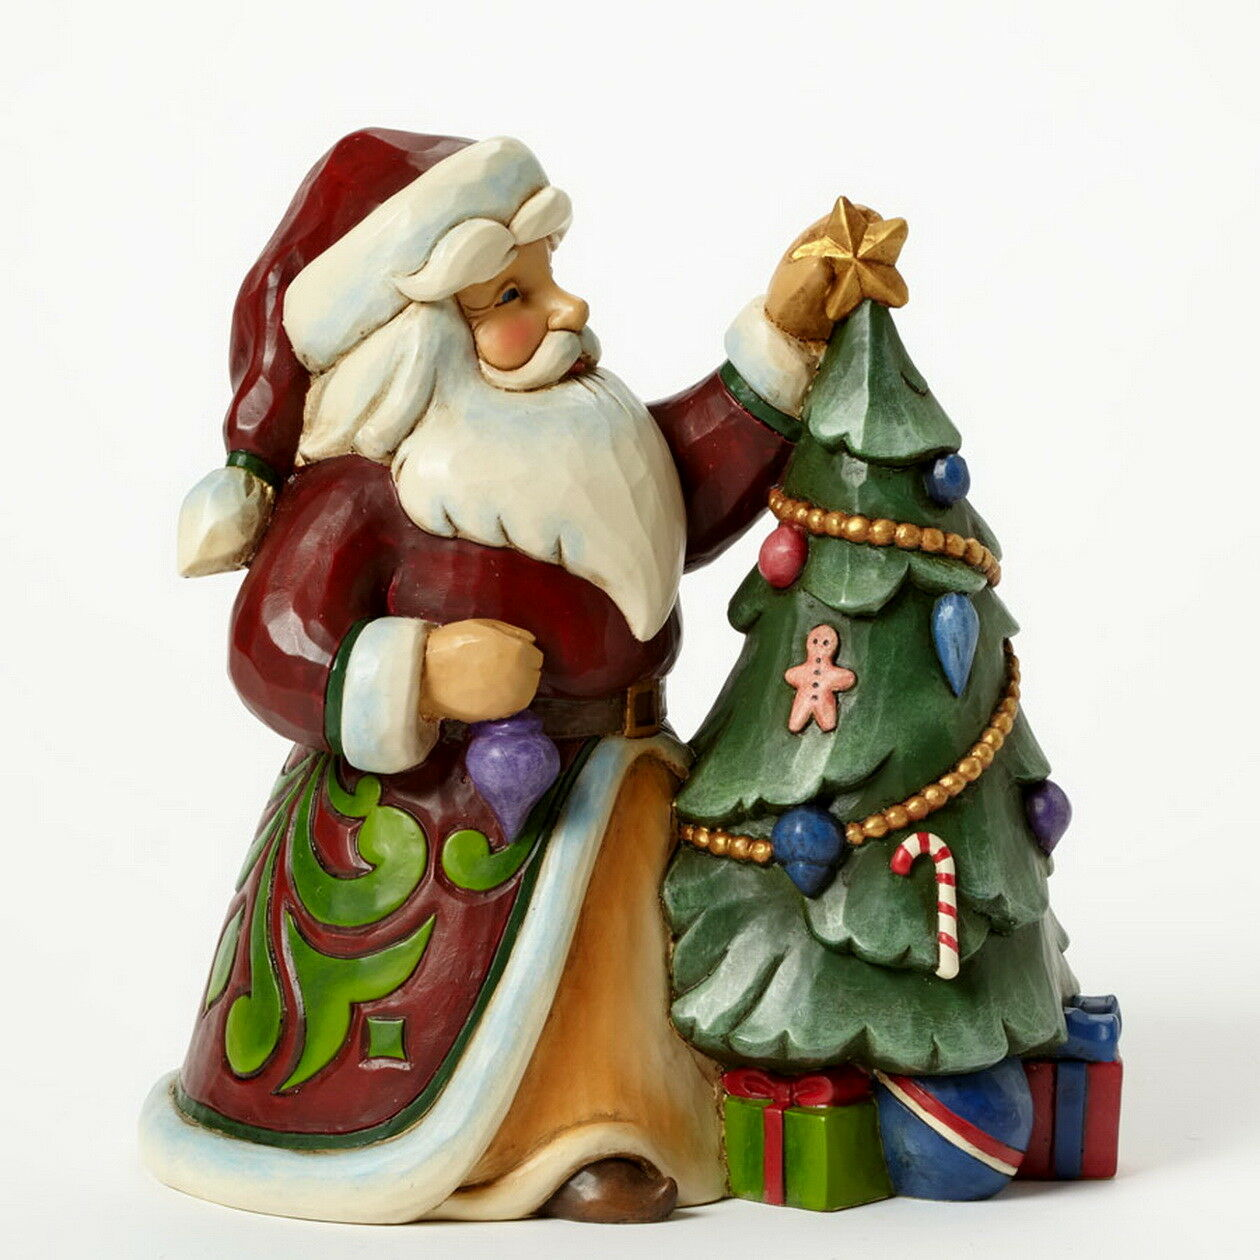 ENESCO Christmas Decorazione Decorazione Decorazione -  SANTA decorating Tree  - Jim Shore Figura 4044069 3f439b